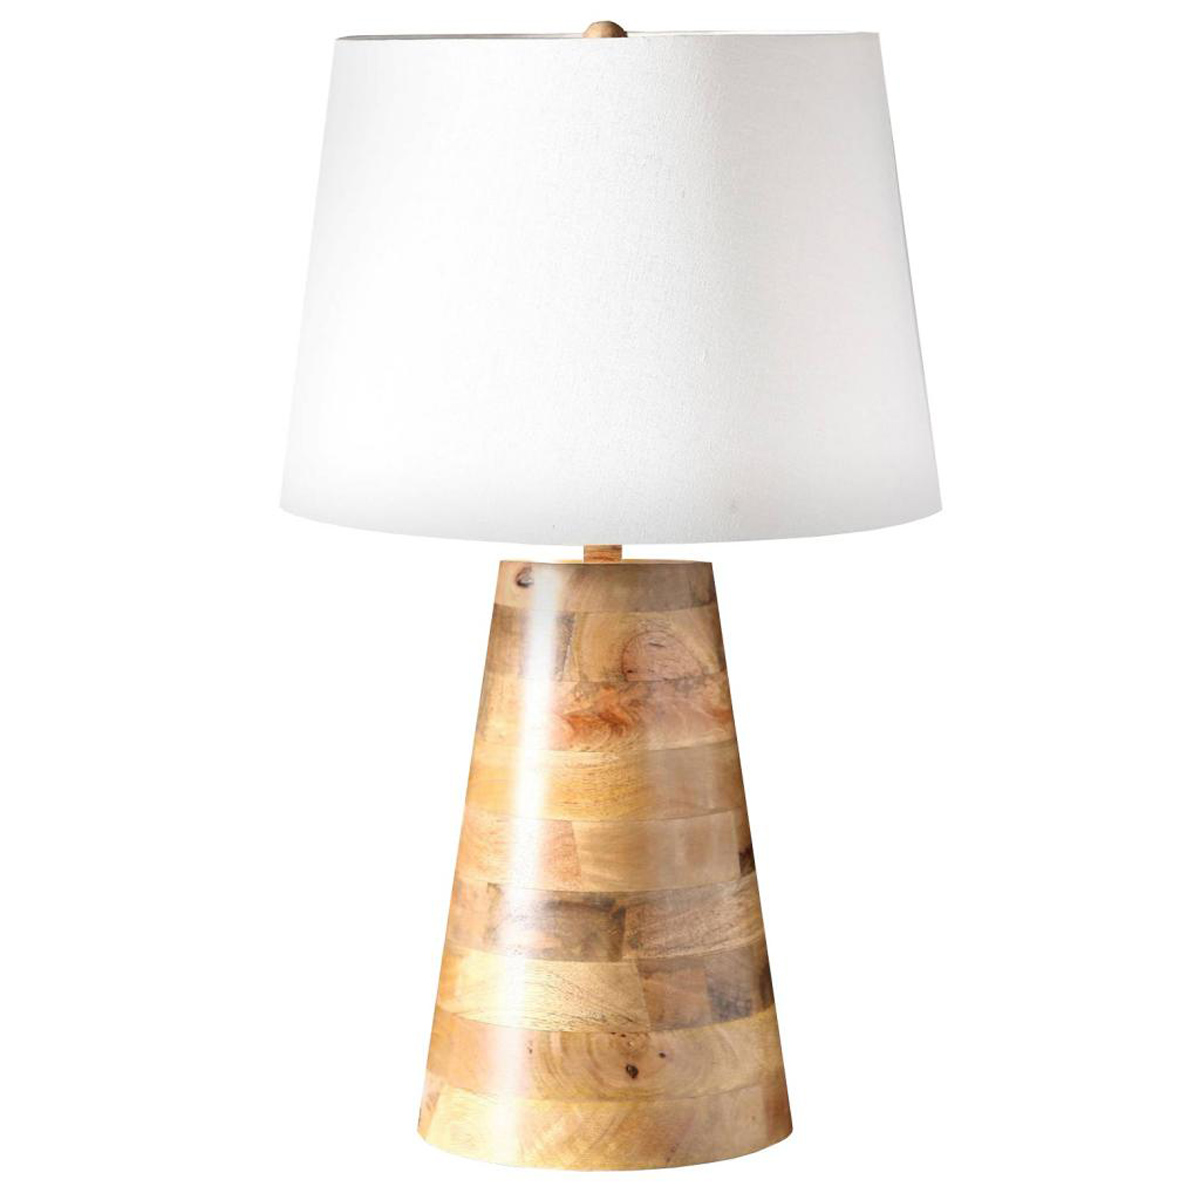 Ren-Wil Irpa Table Lamp - Natural wood